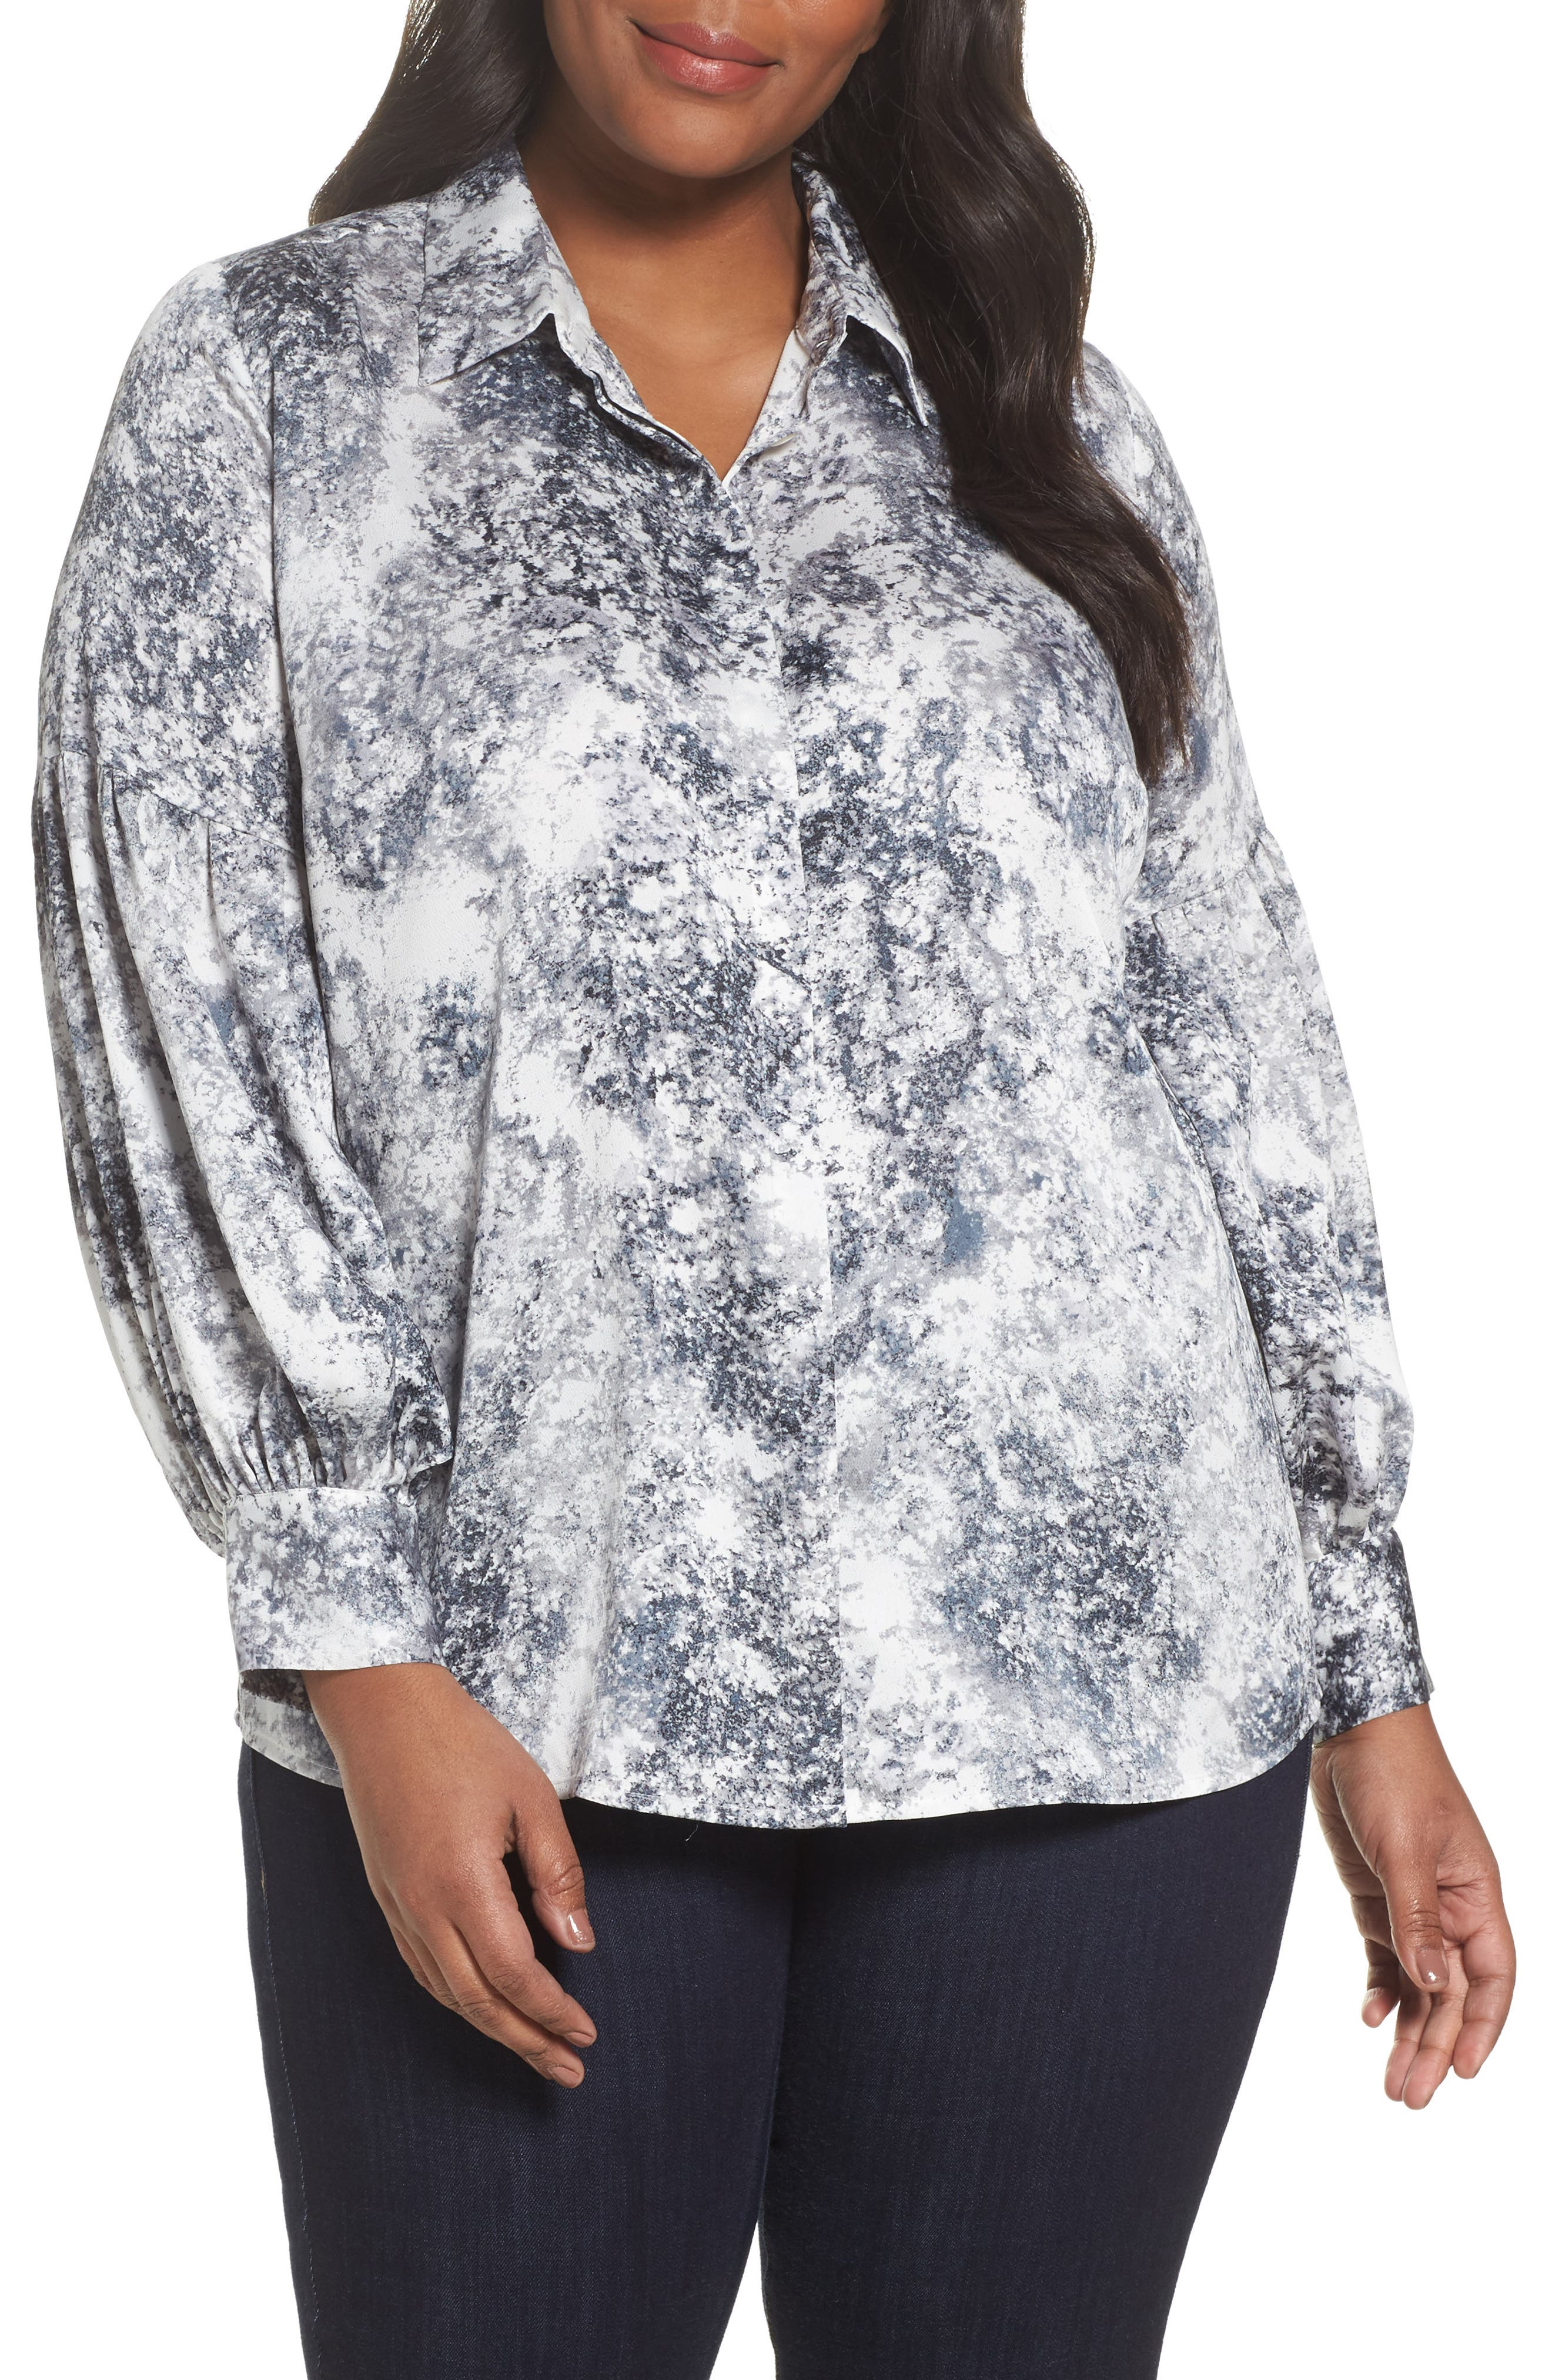 Alternate Image 1 Selected - Vince Camuto Speckled Print Blouse (Plus Size)